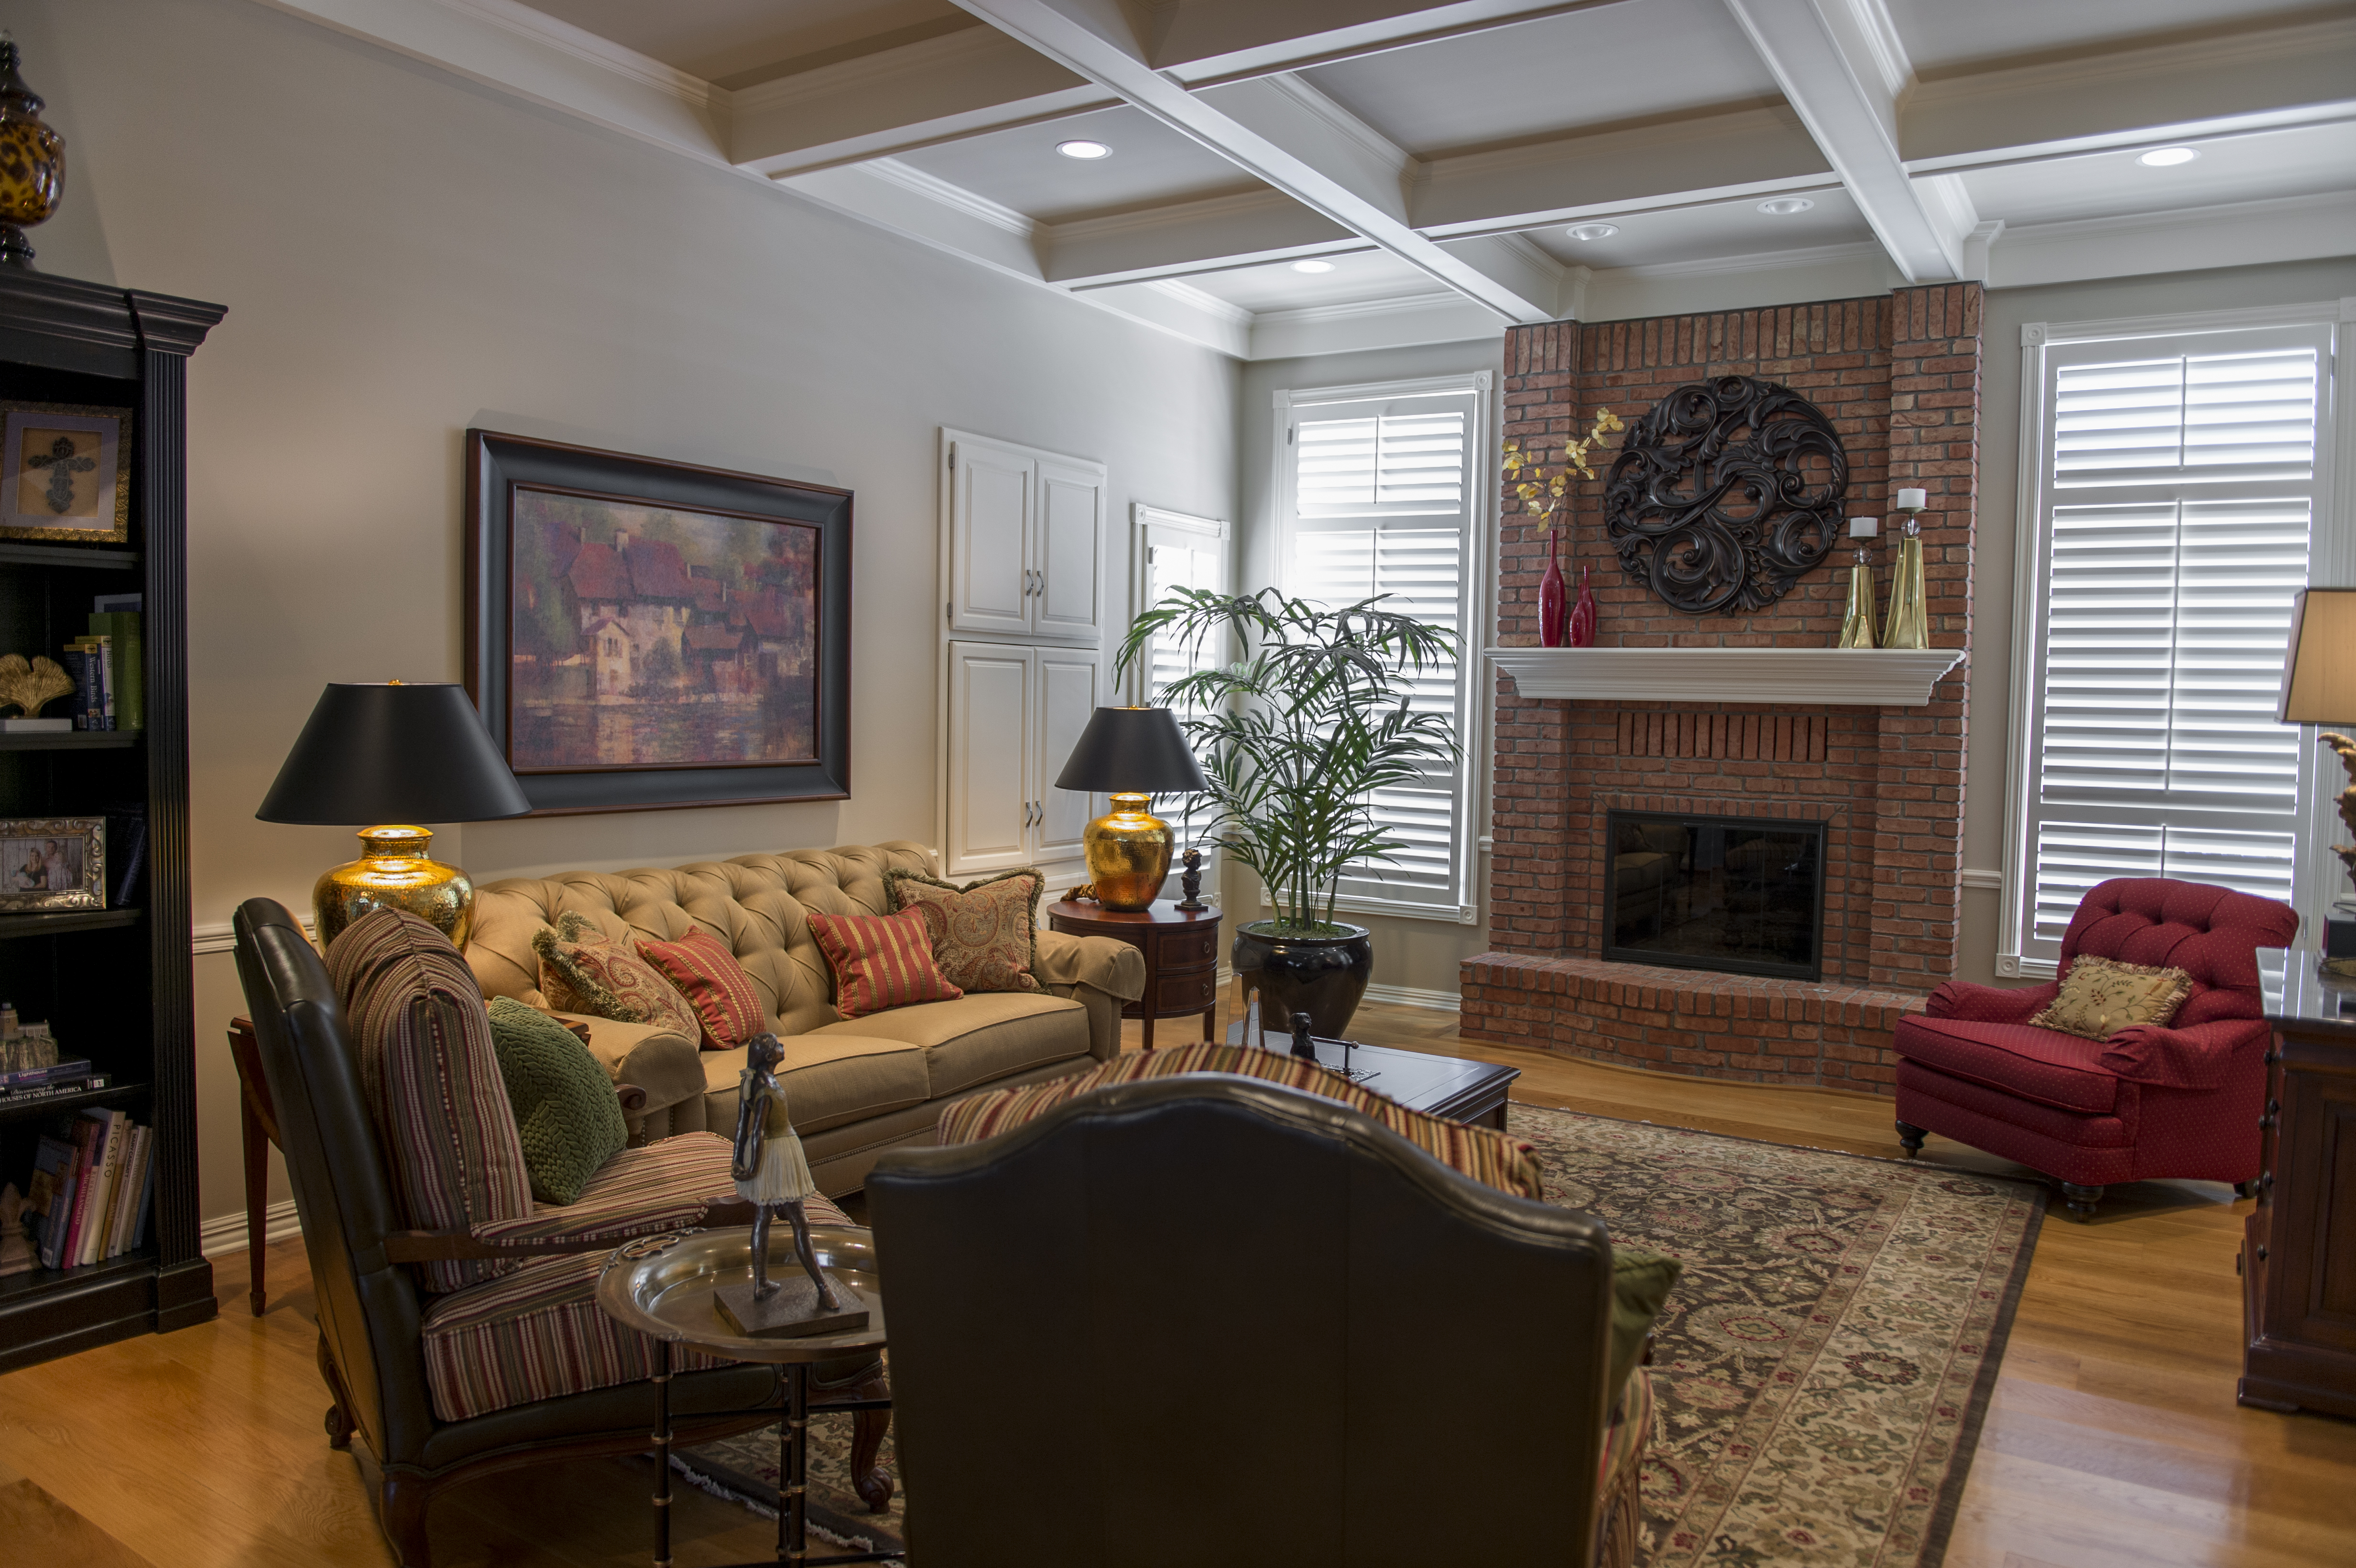 Exceptionnel Interior Decorating Greater Omaha U2013 Bring Your Idea Of A Comfortable,  Stylish Home To Life!